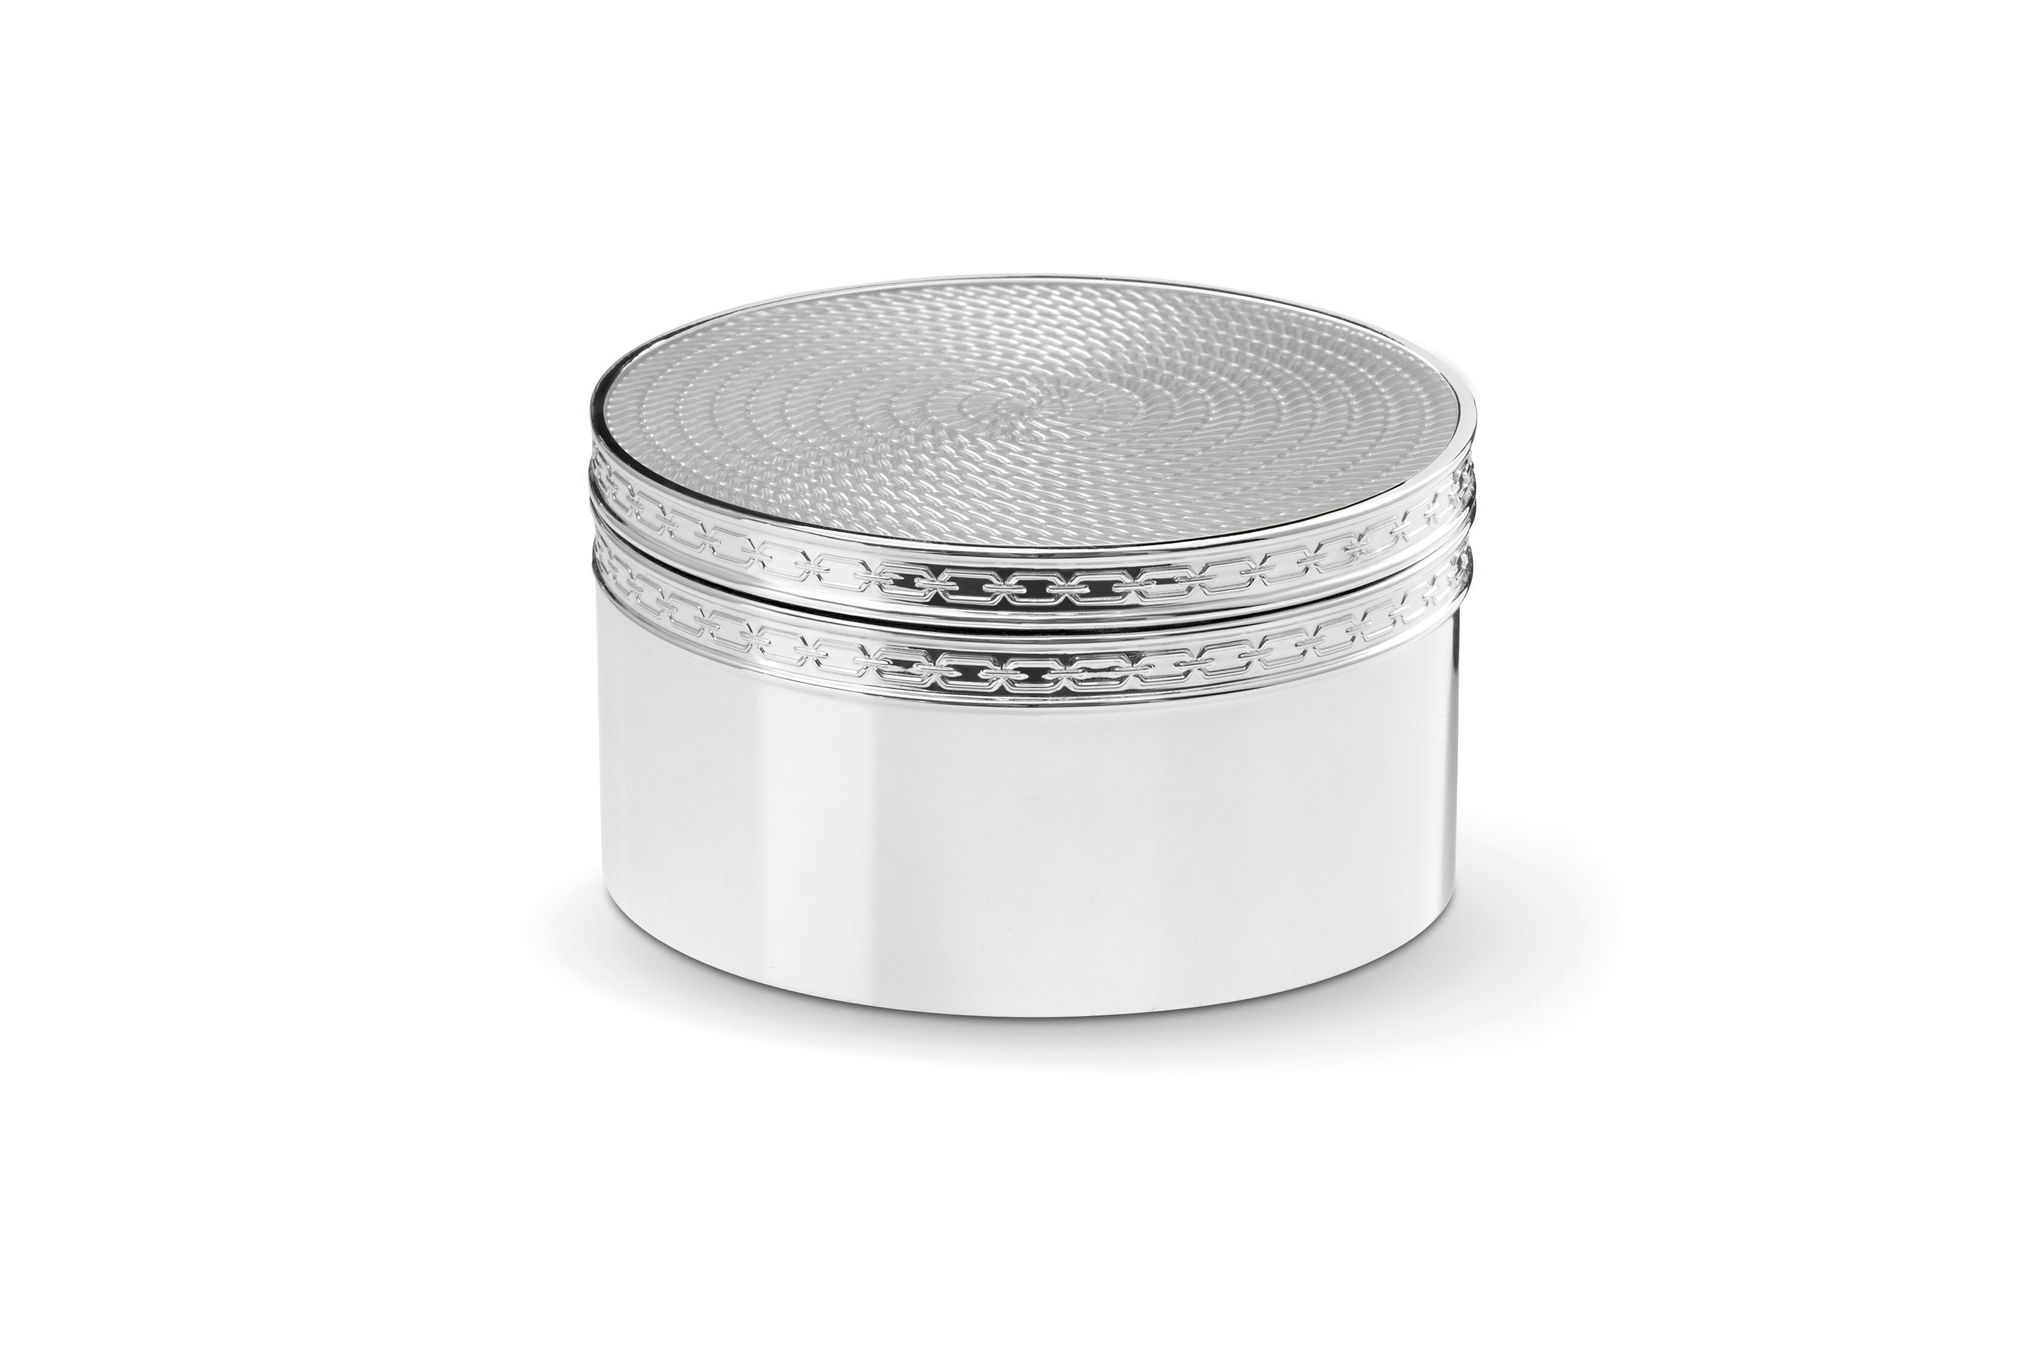 Vera Wang for Wedgwood With Love Nouveau Covered Box Silver thumb 1